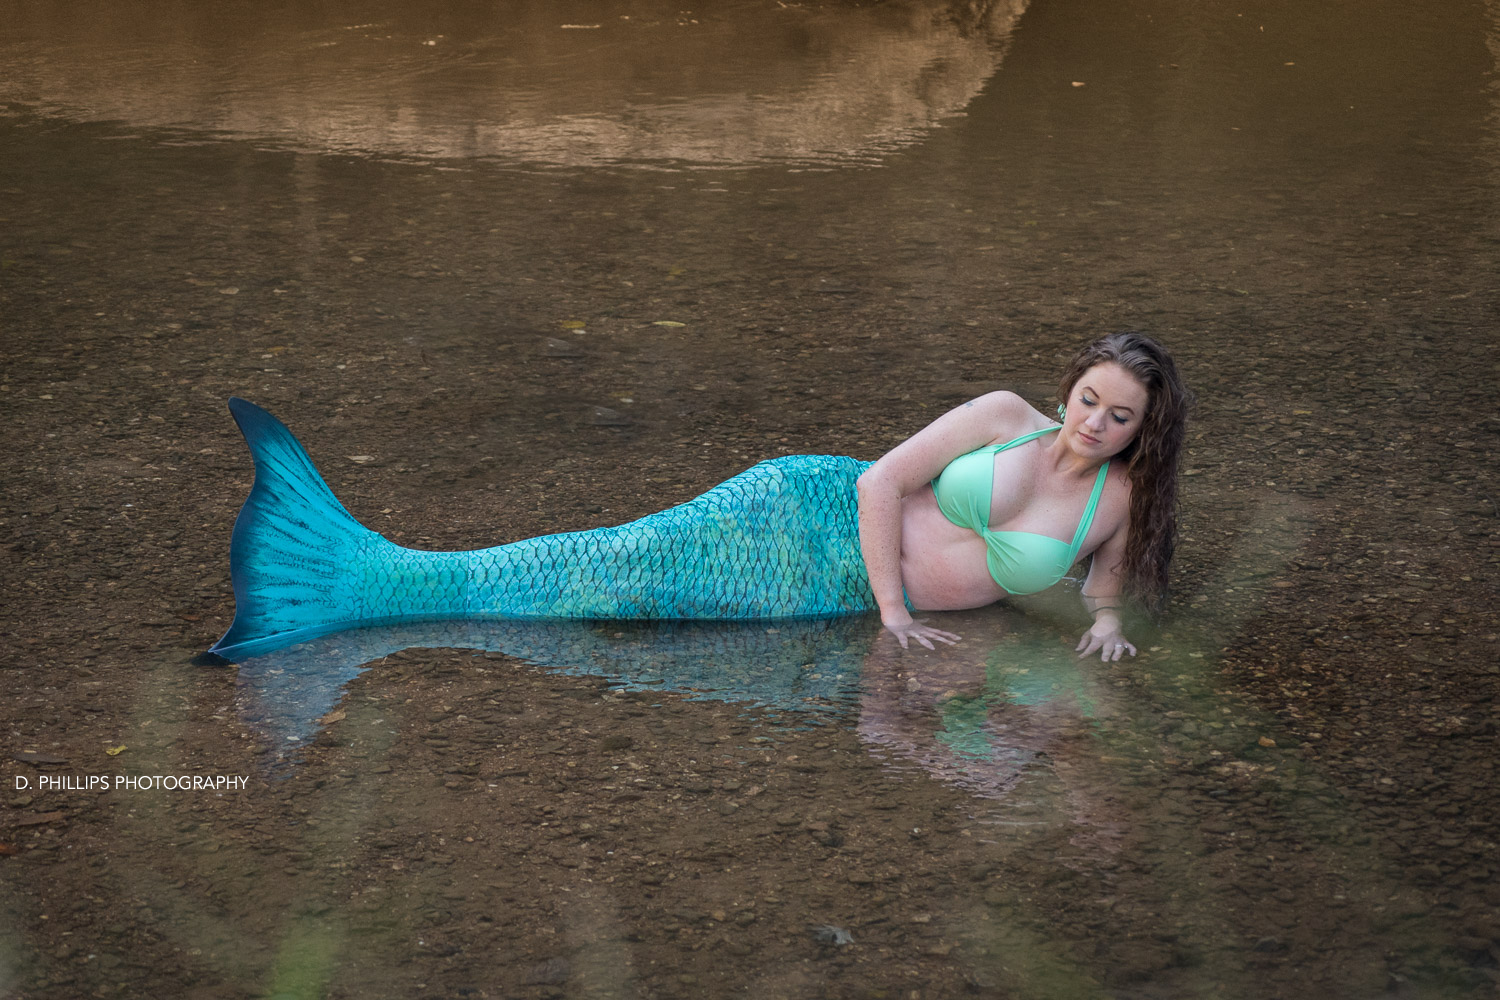 Clarksville-Mermaid-Photos-D-Phillips-Photography-2016-11.png